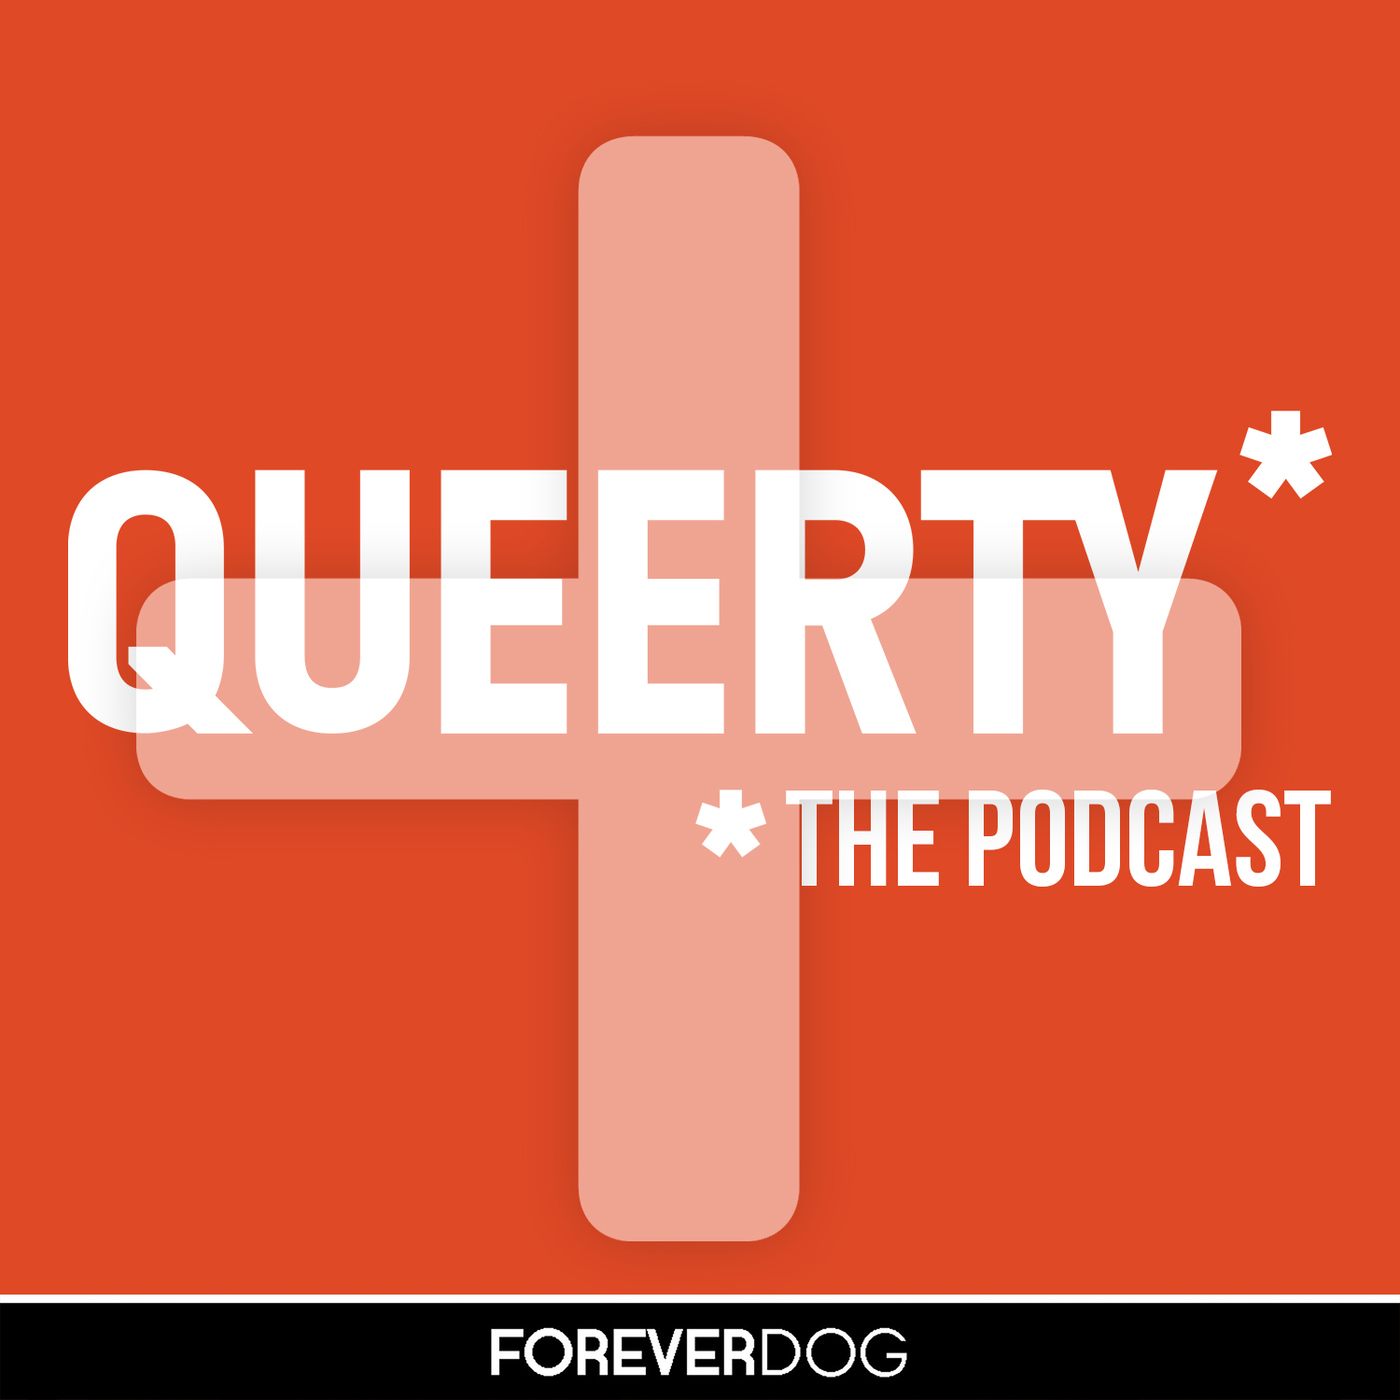 Queerty podcast tile